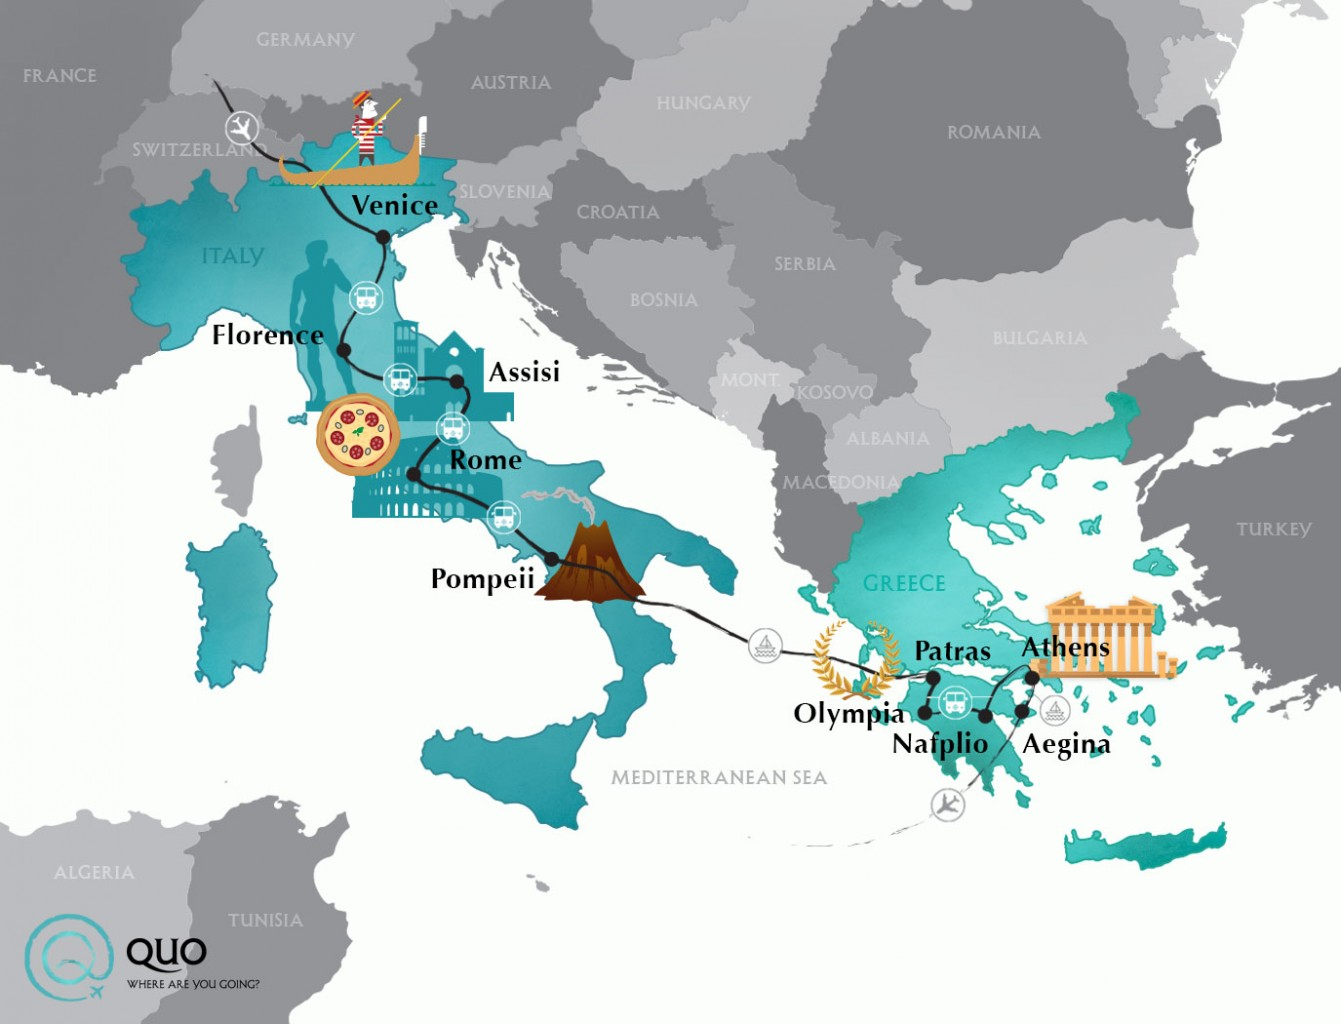 Quo_map-ITALY-GREECE